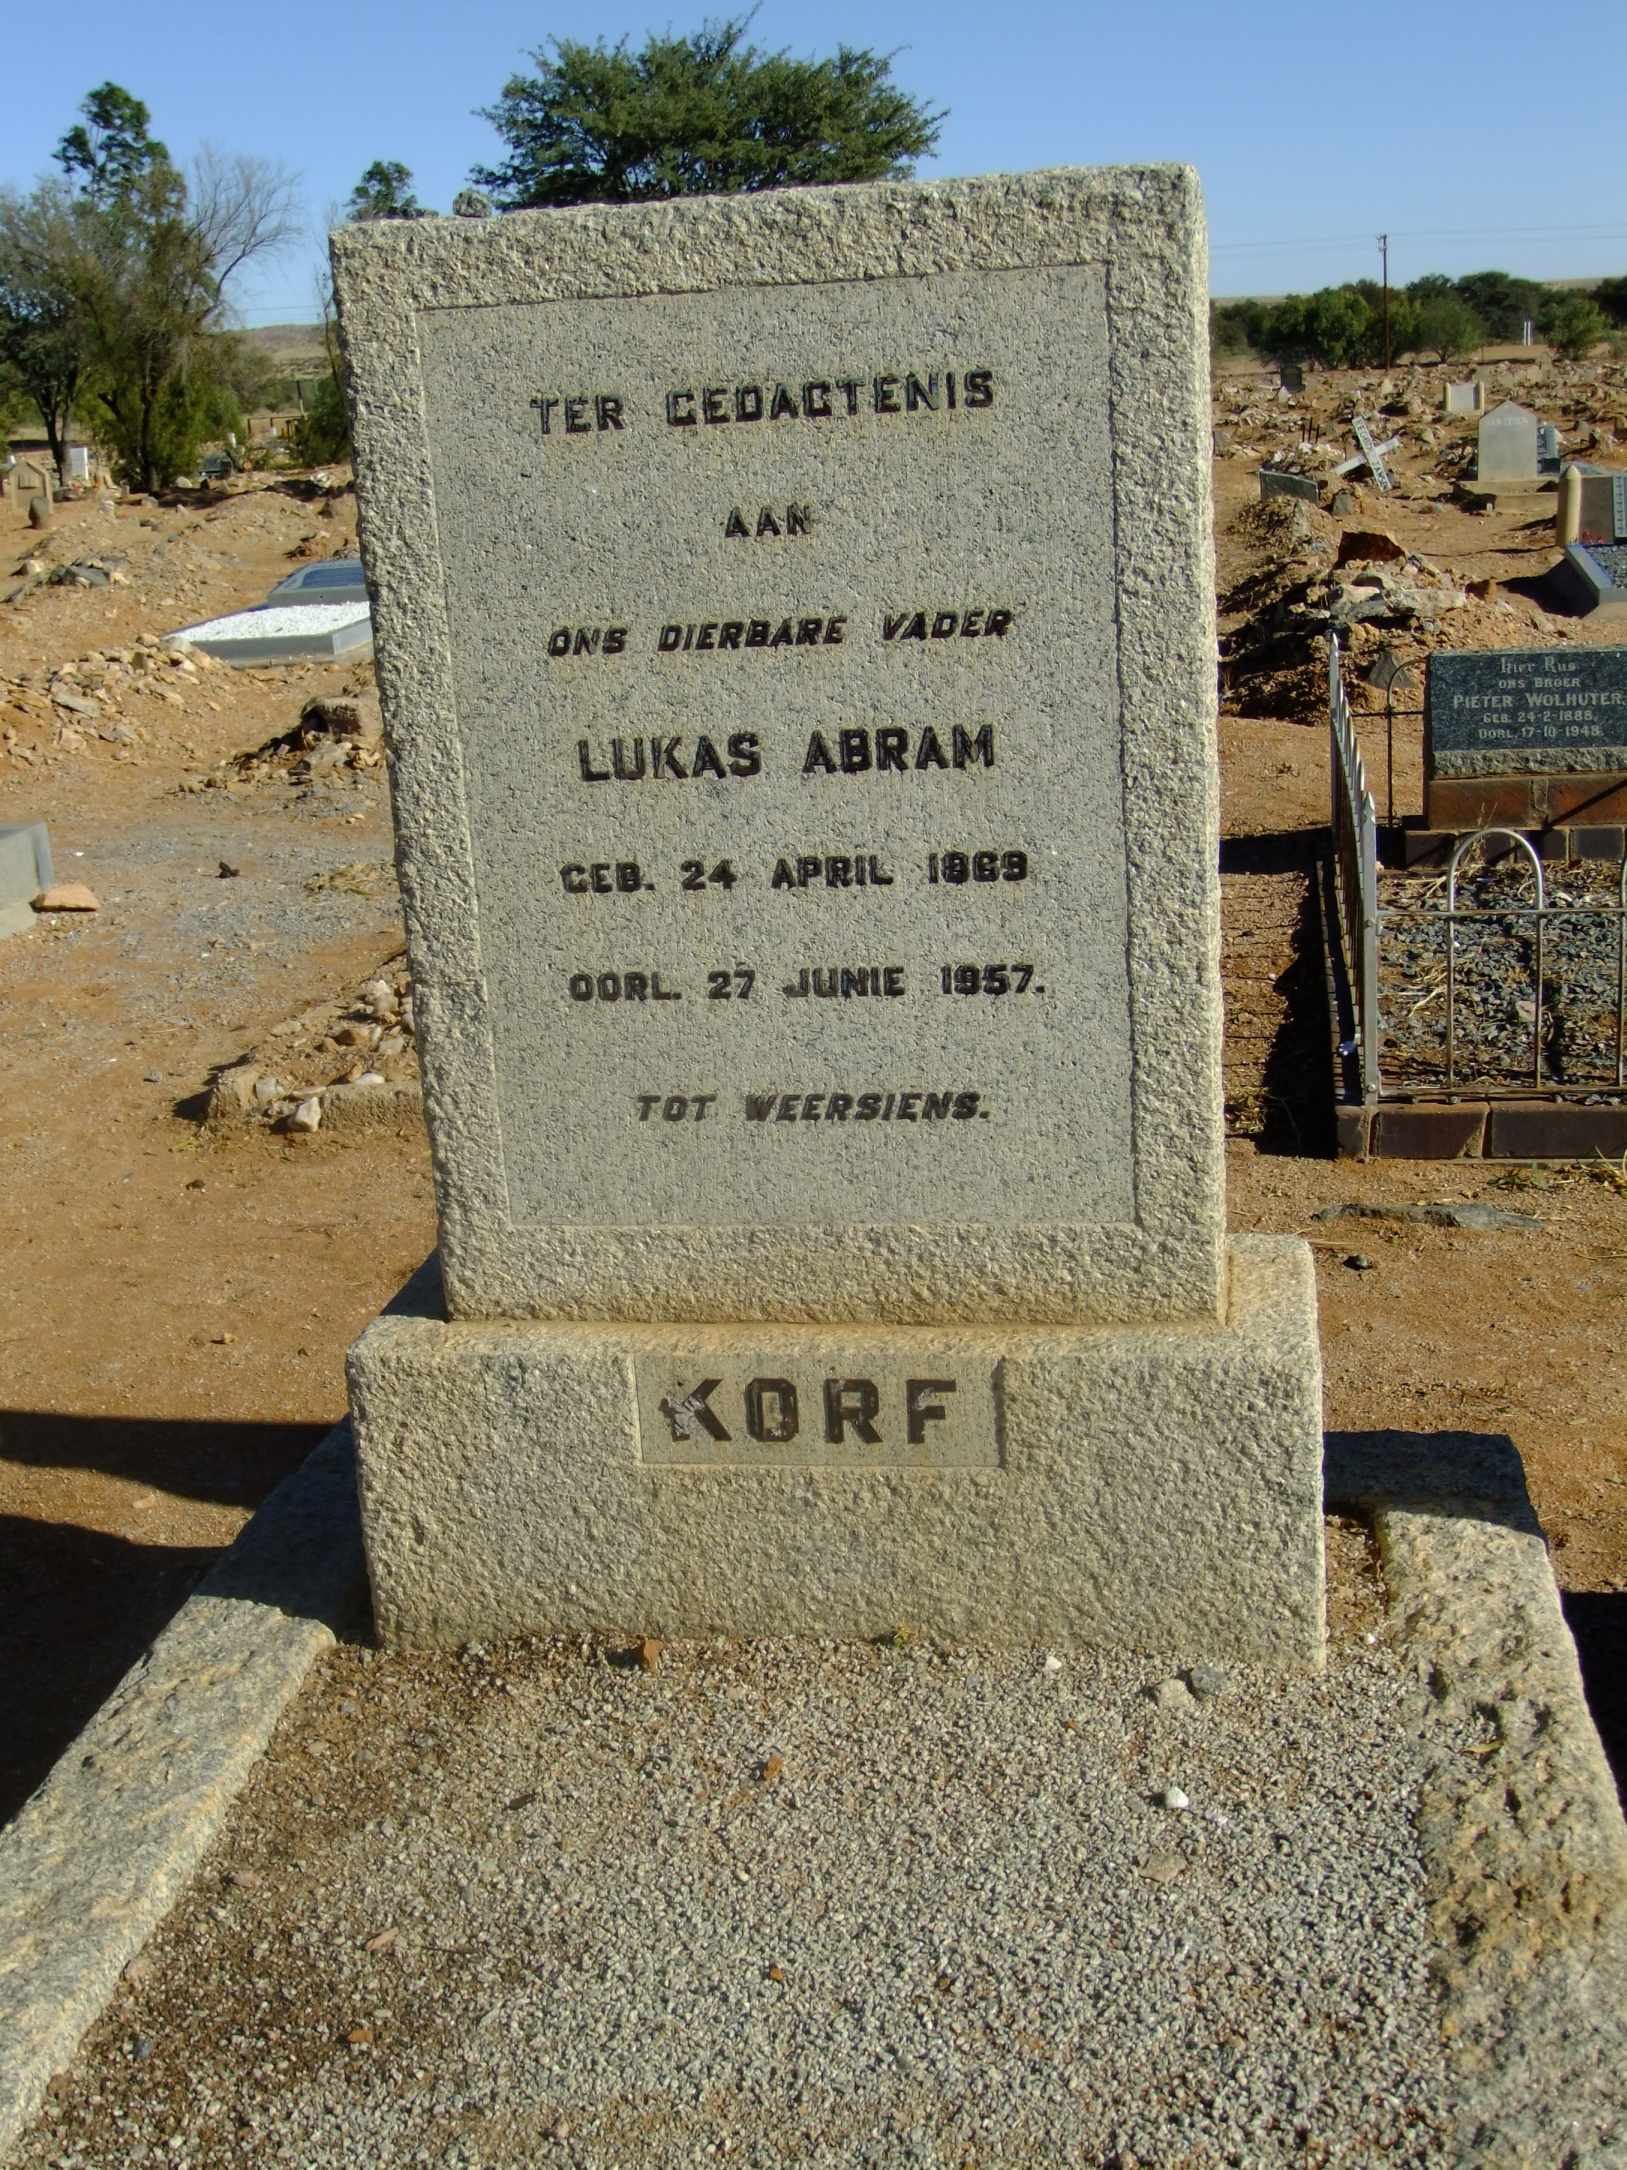 Korf, Lukas Abram born 24 April 1869 died 27 June 1957